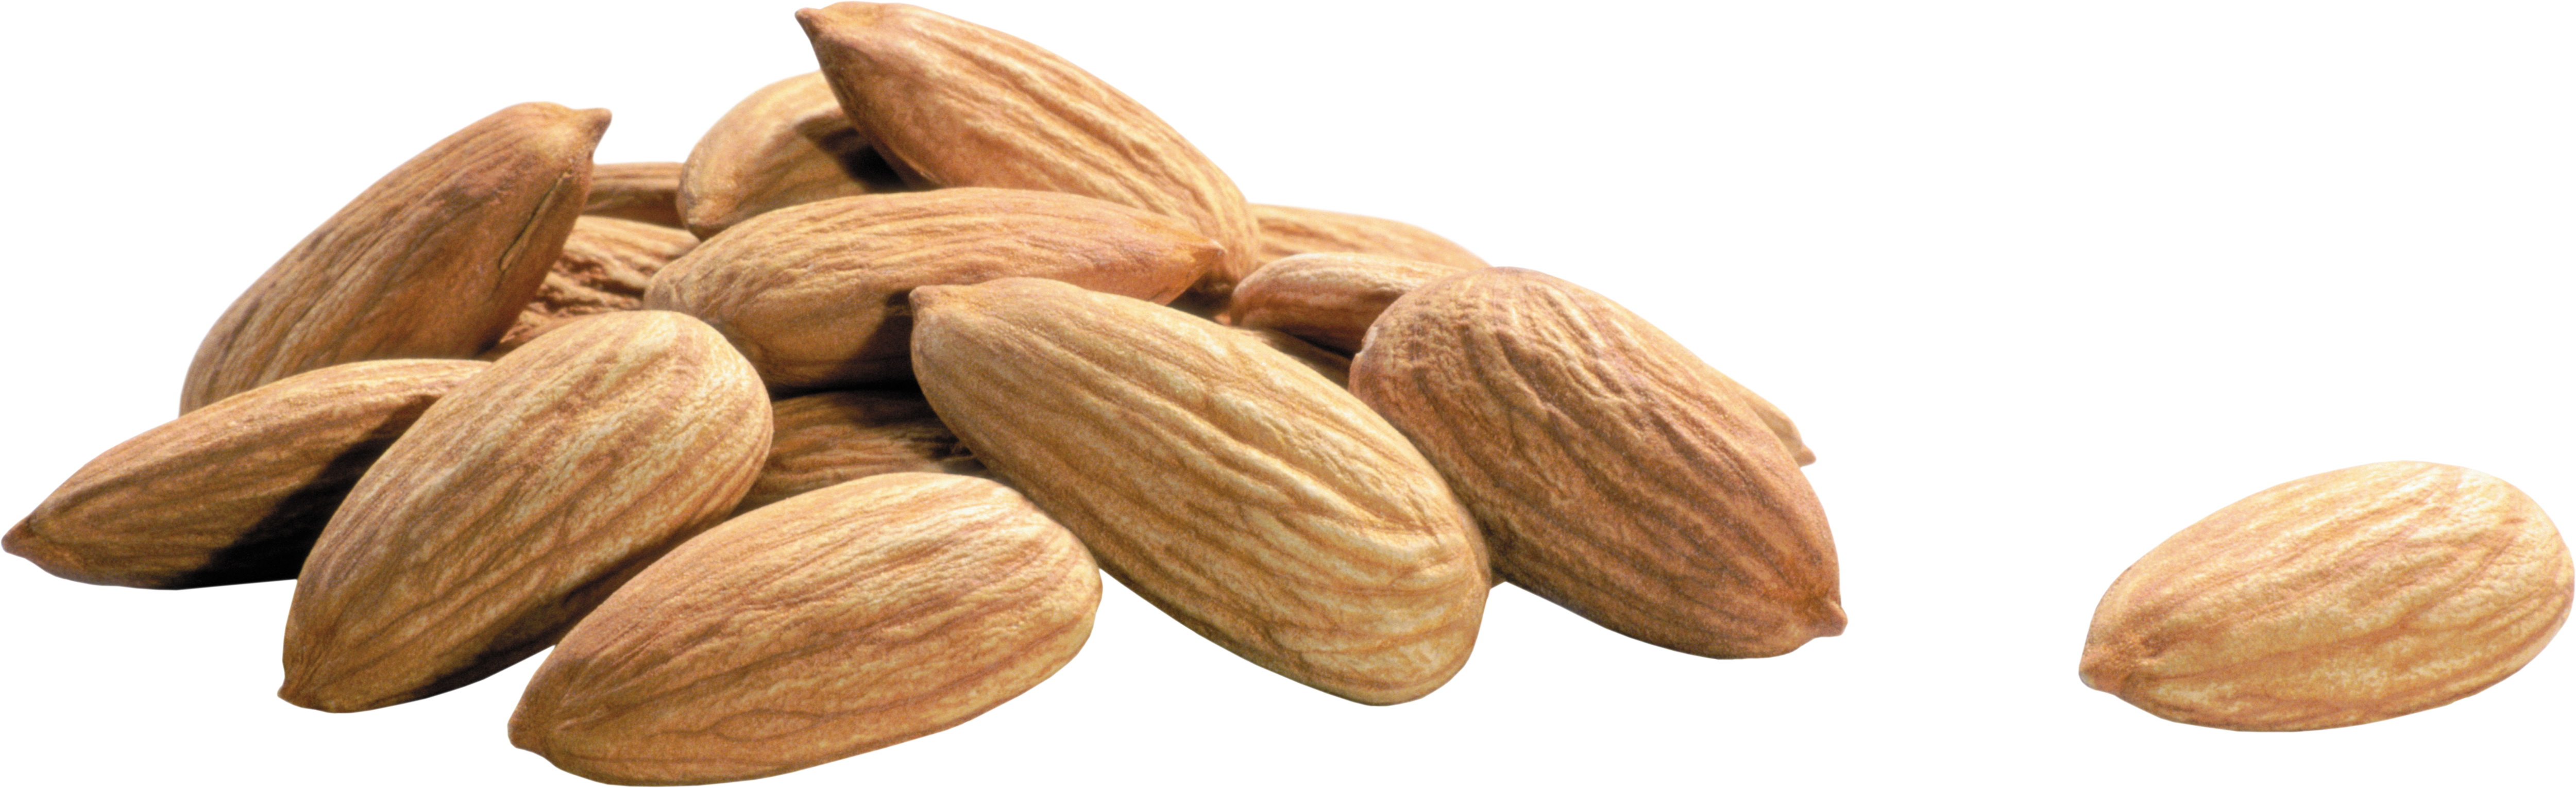 almond hd wallpaper | background image | 5000x1529 | id:451355